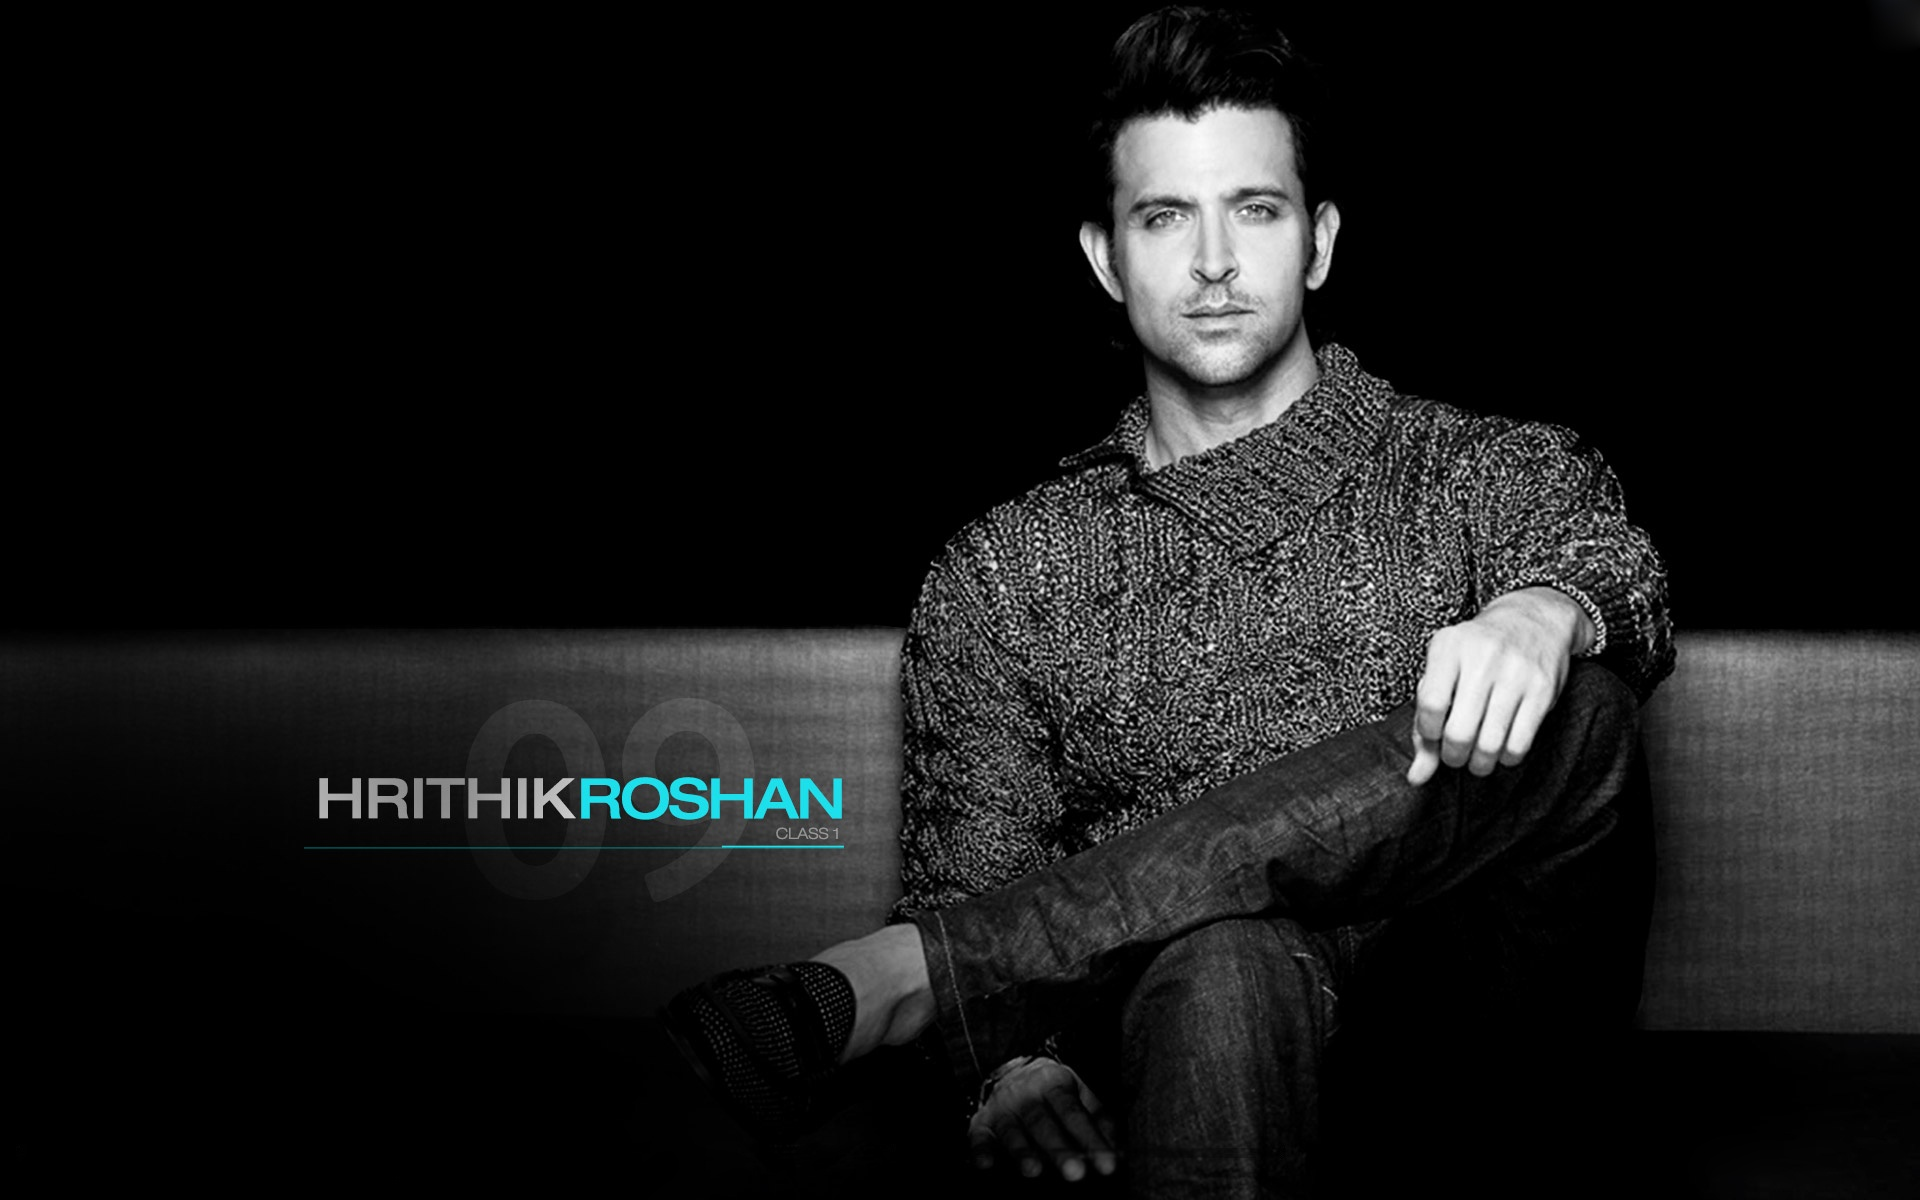 hrithik roshan stylish bollywood actor in sweater wallpapers